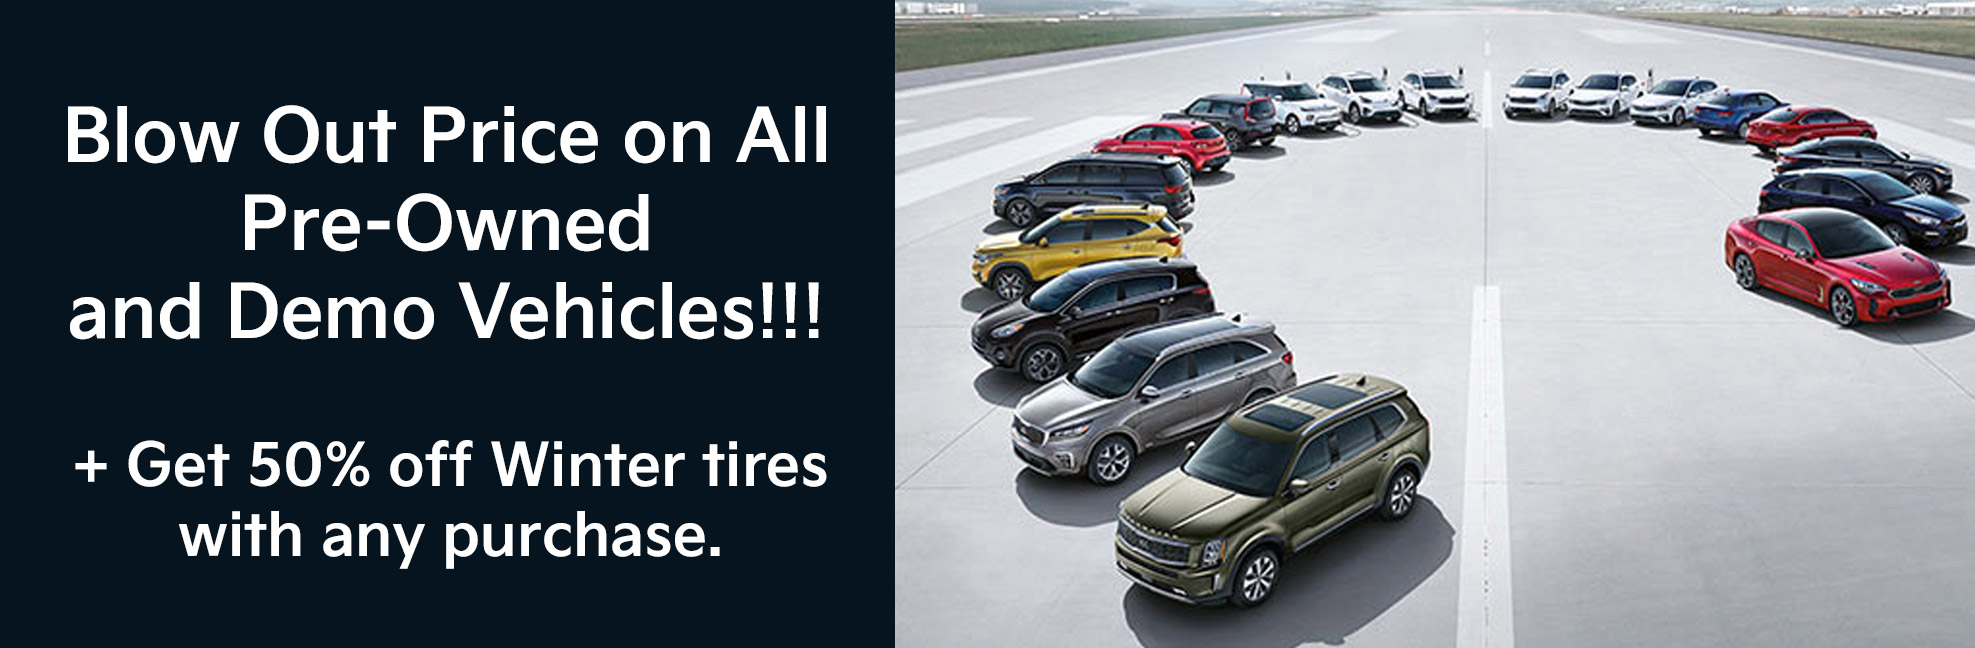 Blow Out Price on All Pre-Owned and Demo vehicles